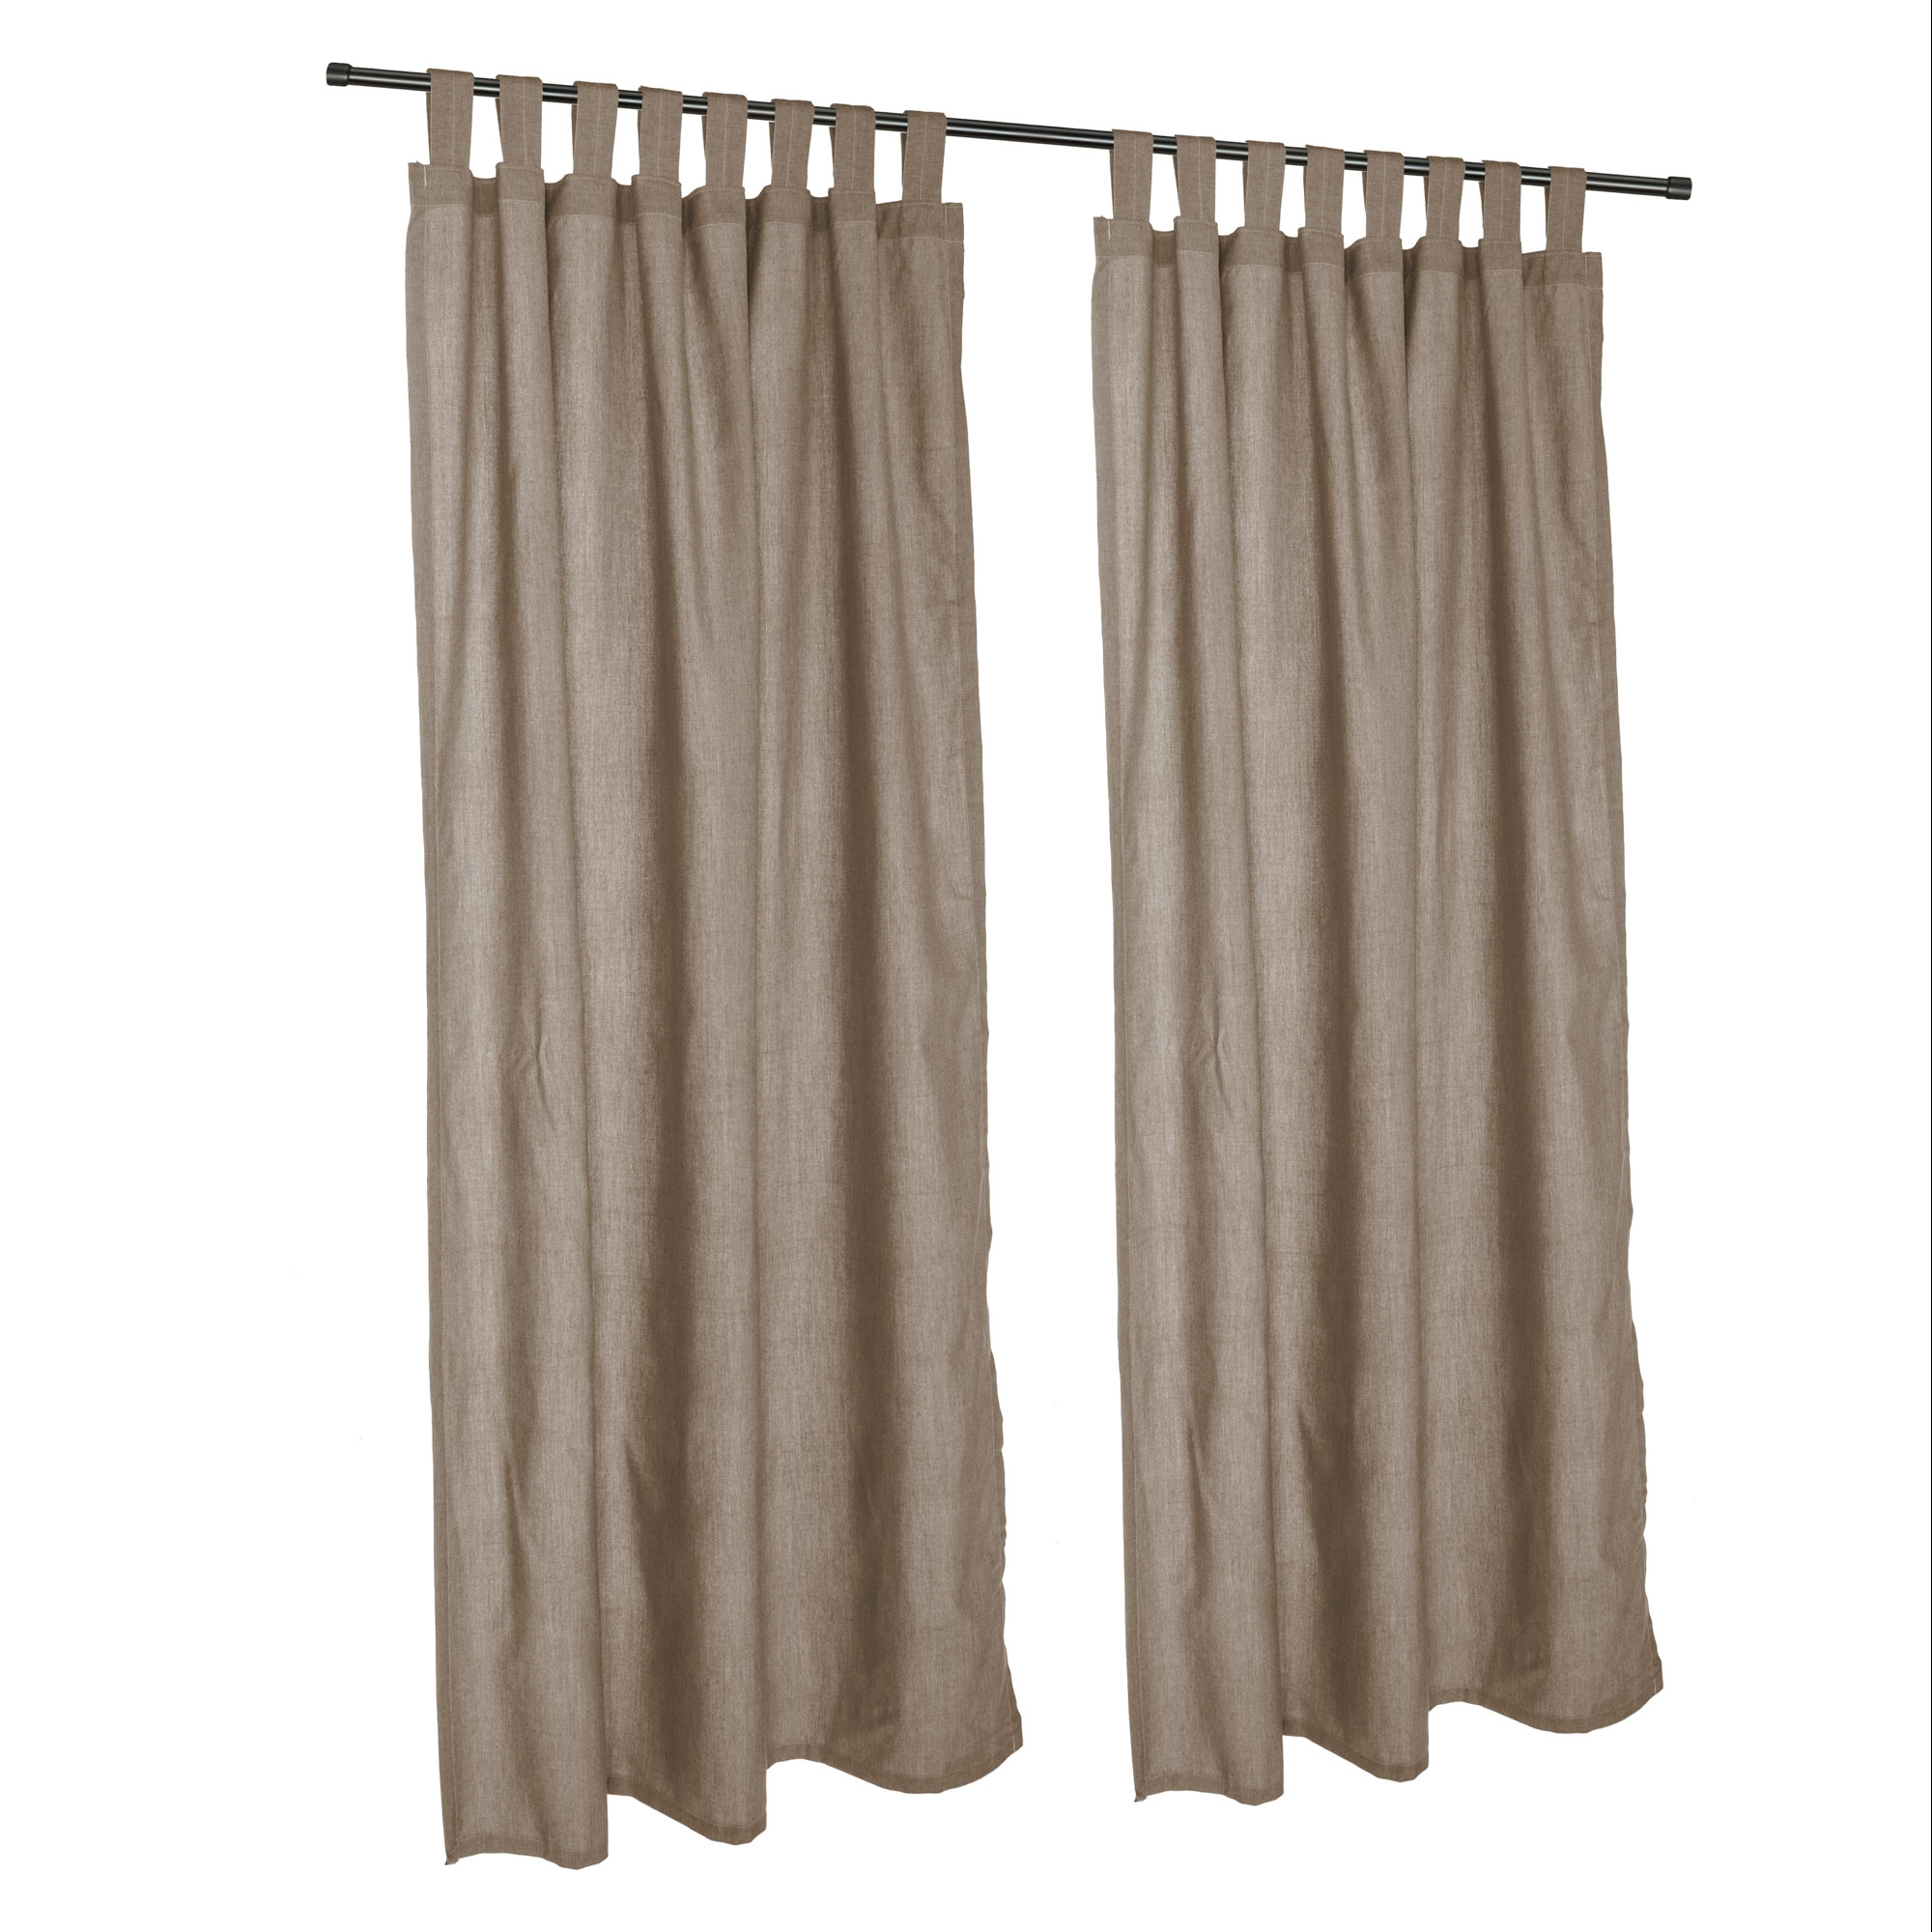 Outdoor Curtains with Grommets | Lowes Draperies | Sunbrella Curtains